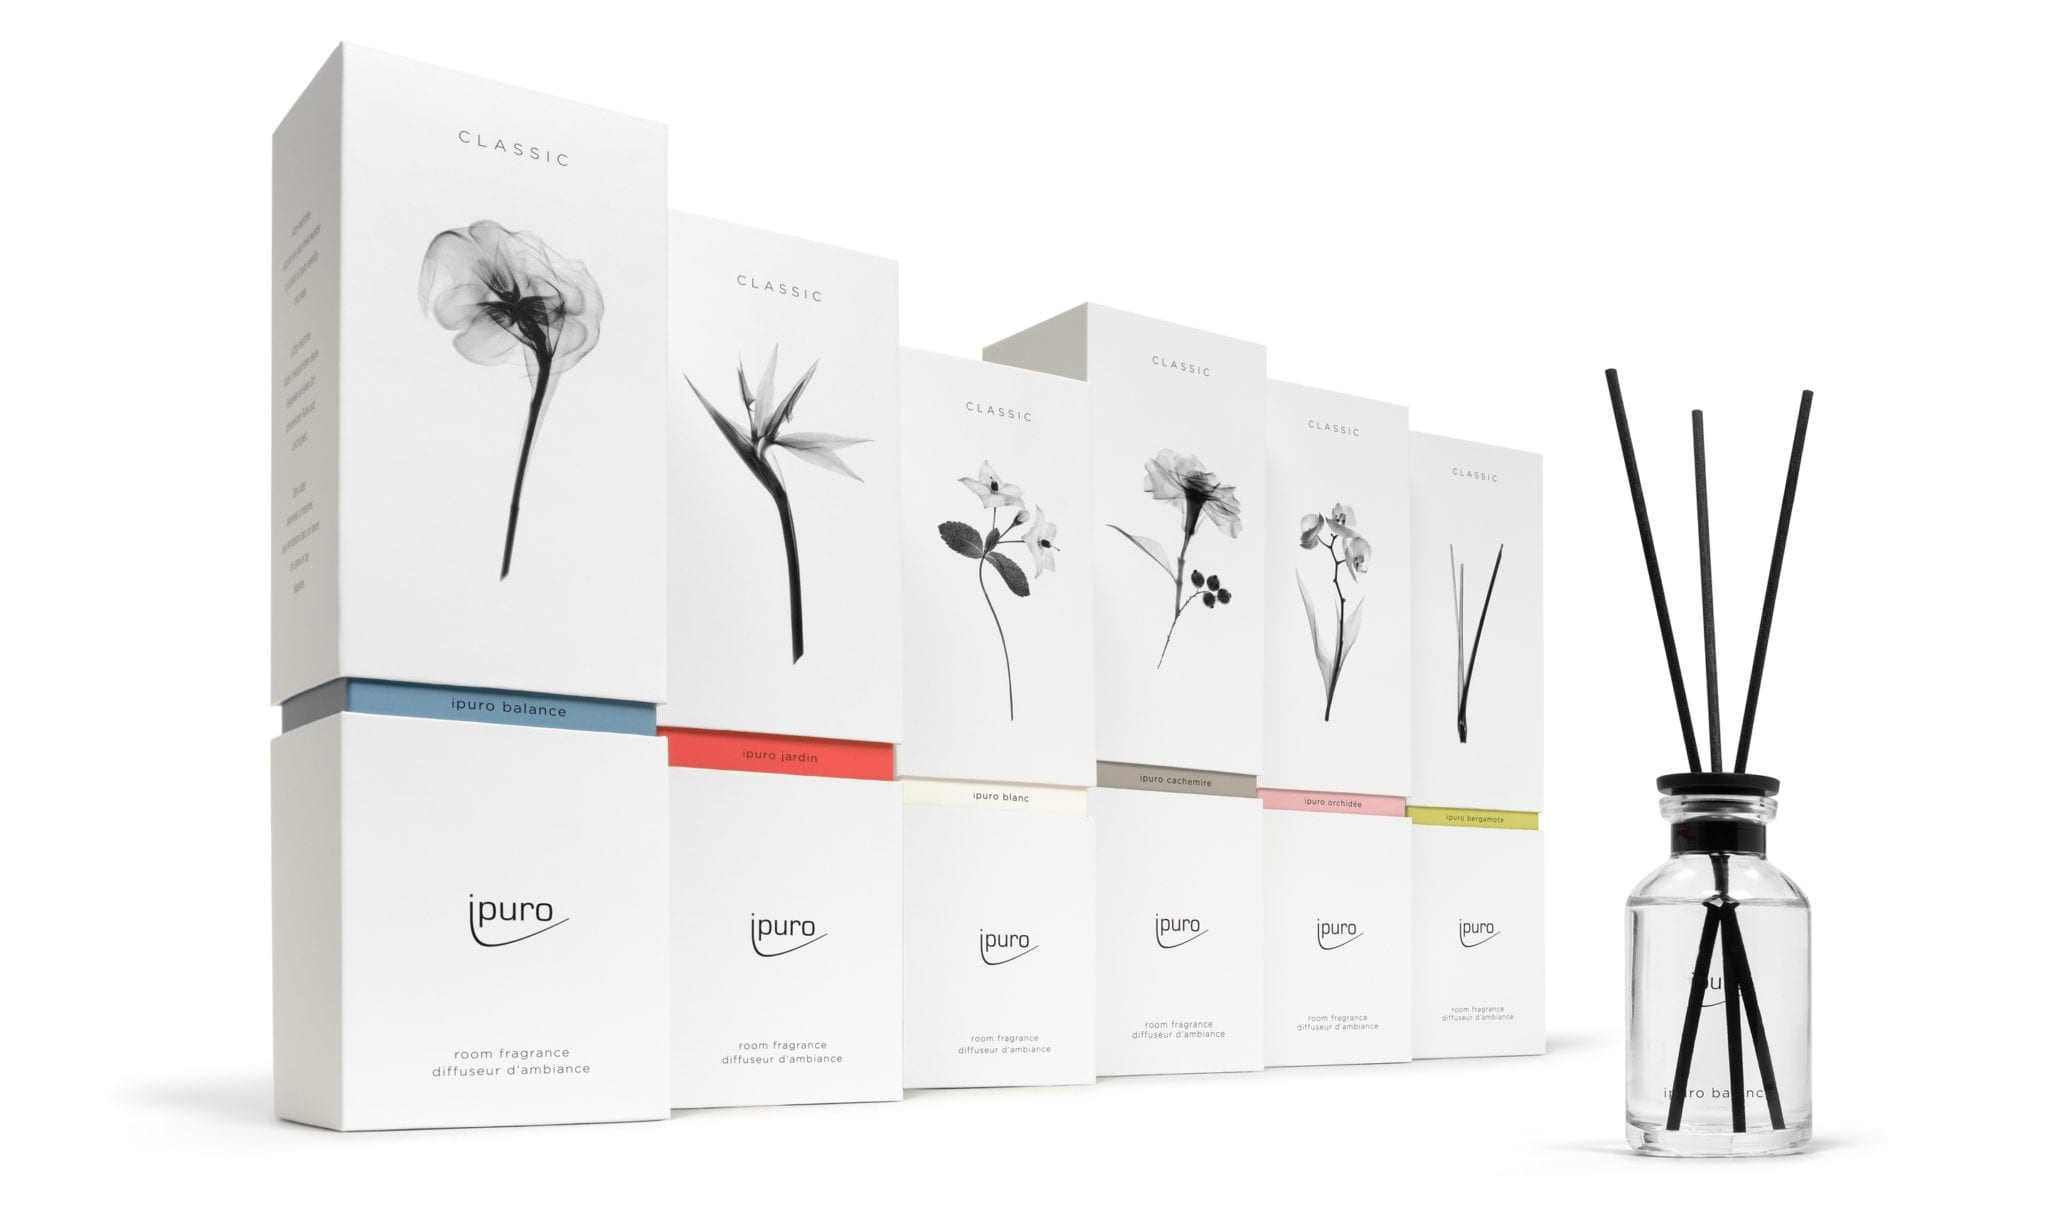 ipuro classic product line packaging design and flask